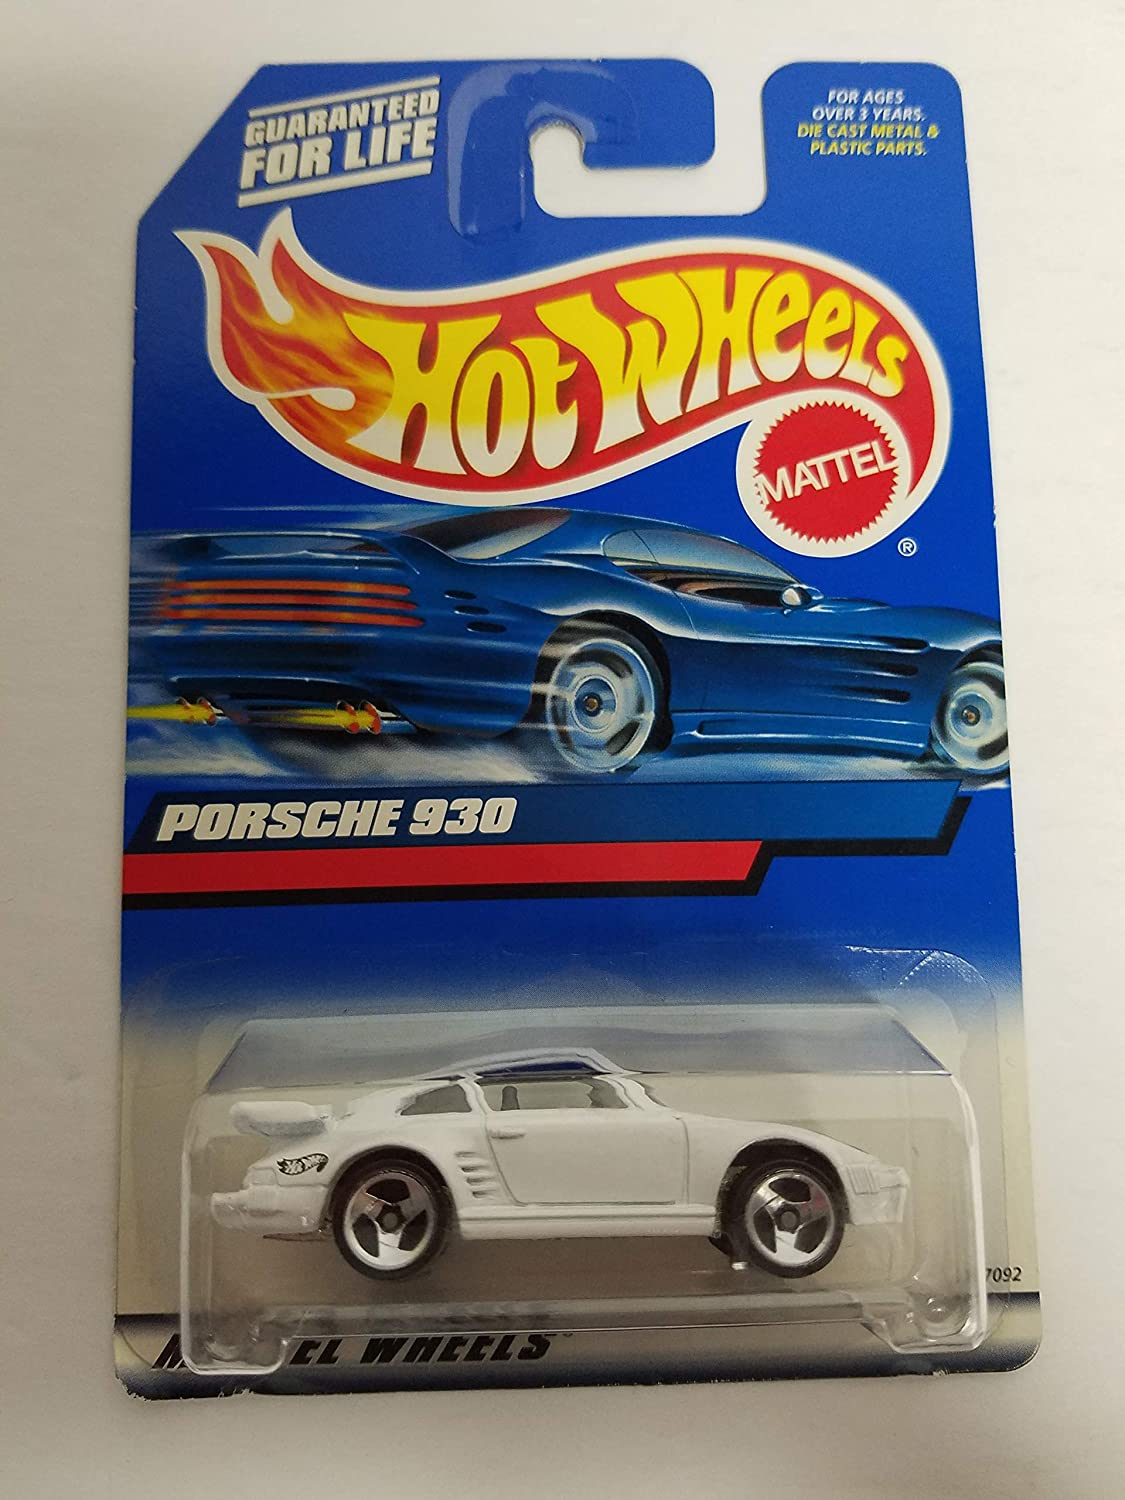 Porsche 930 Hot Wheels 2000 1/64 scale diecast car No. 125